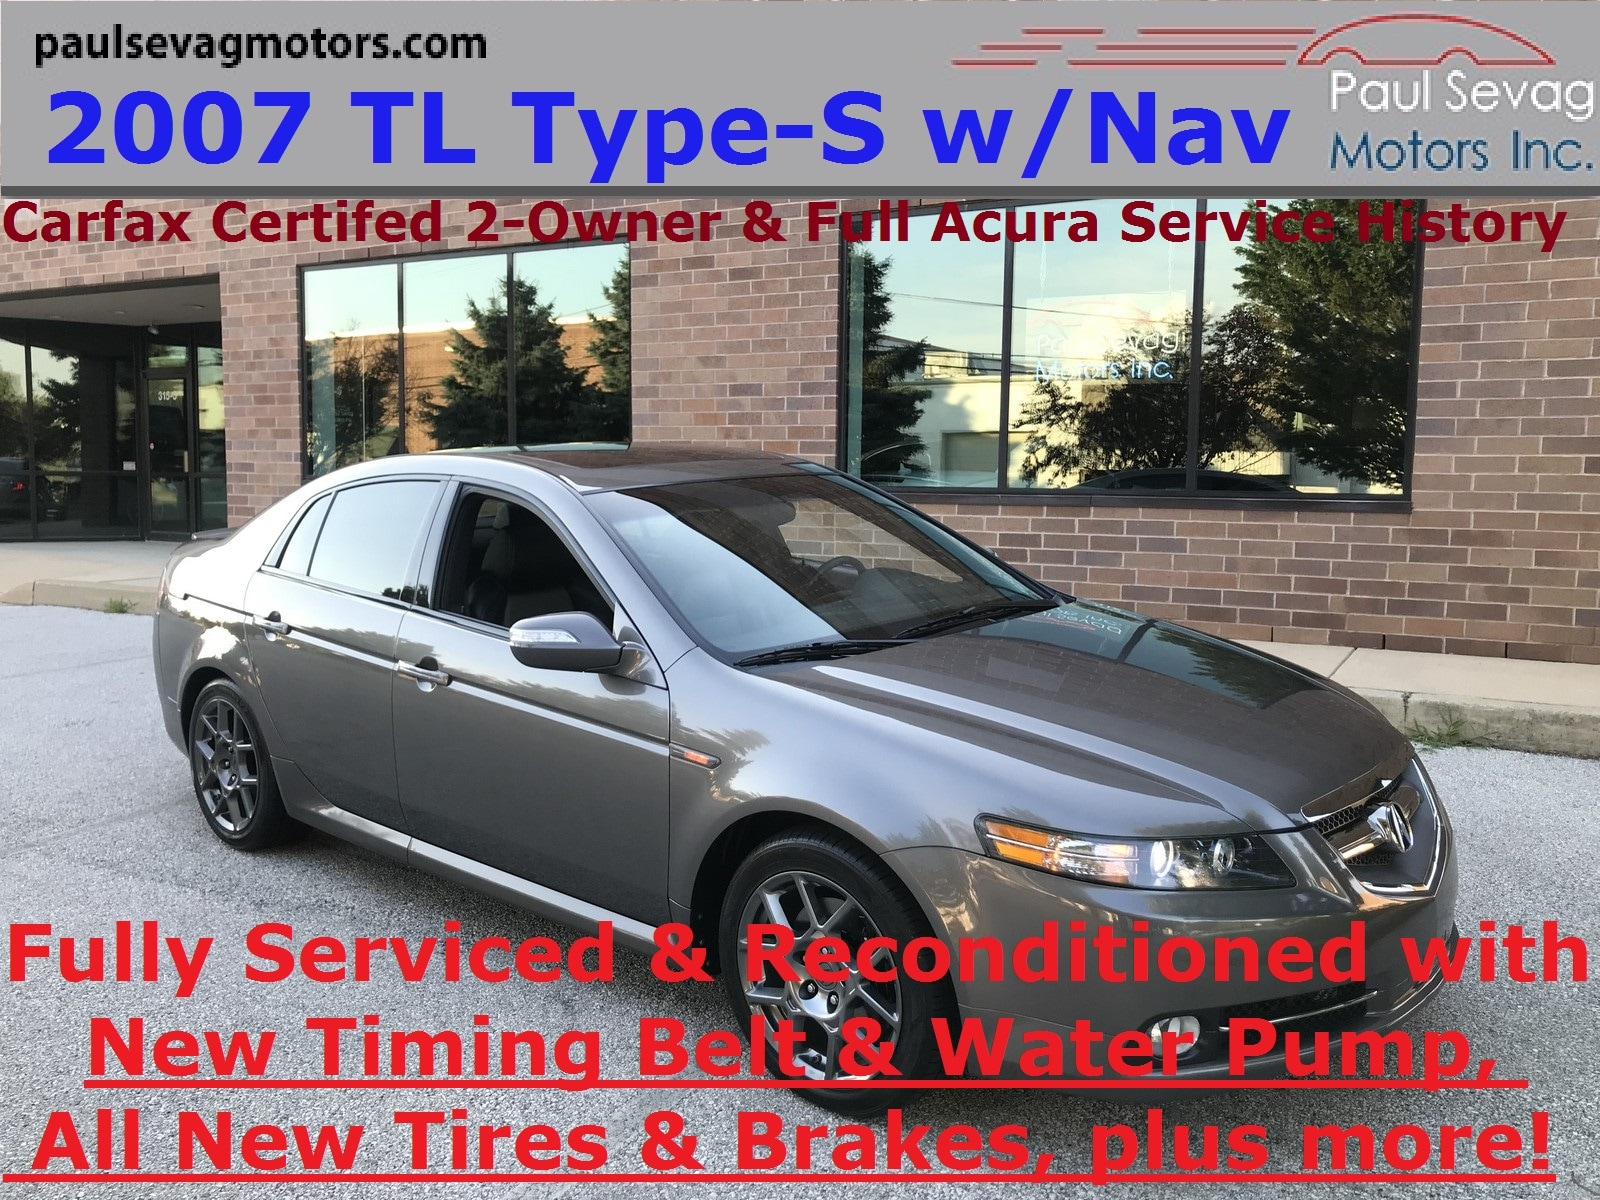 2007 Acura TL Type S with Navigation Fully Serviced including Timing Belt Sedan